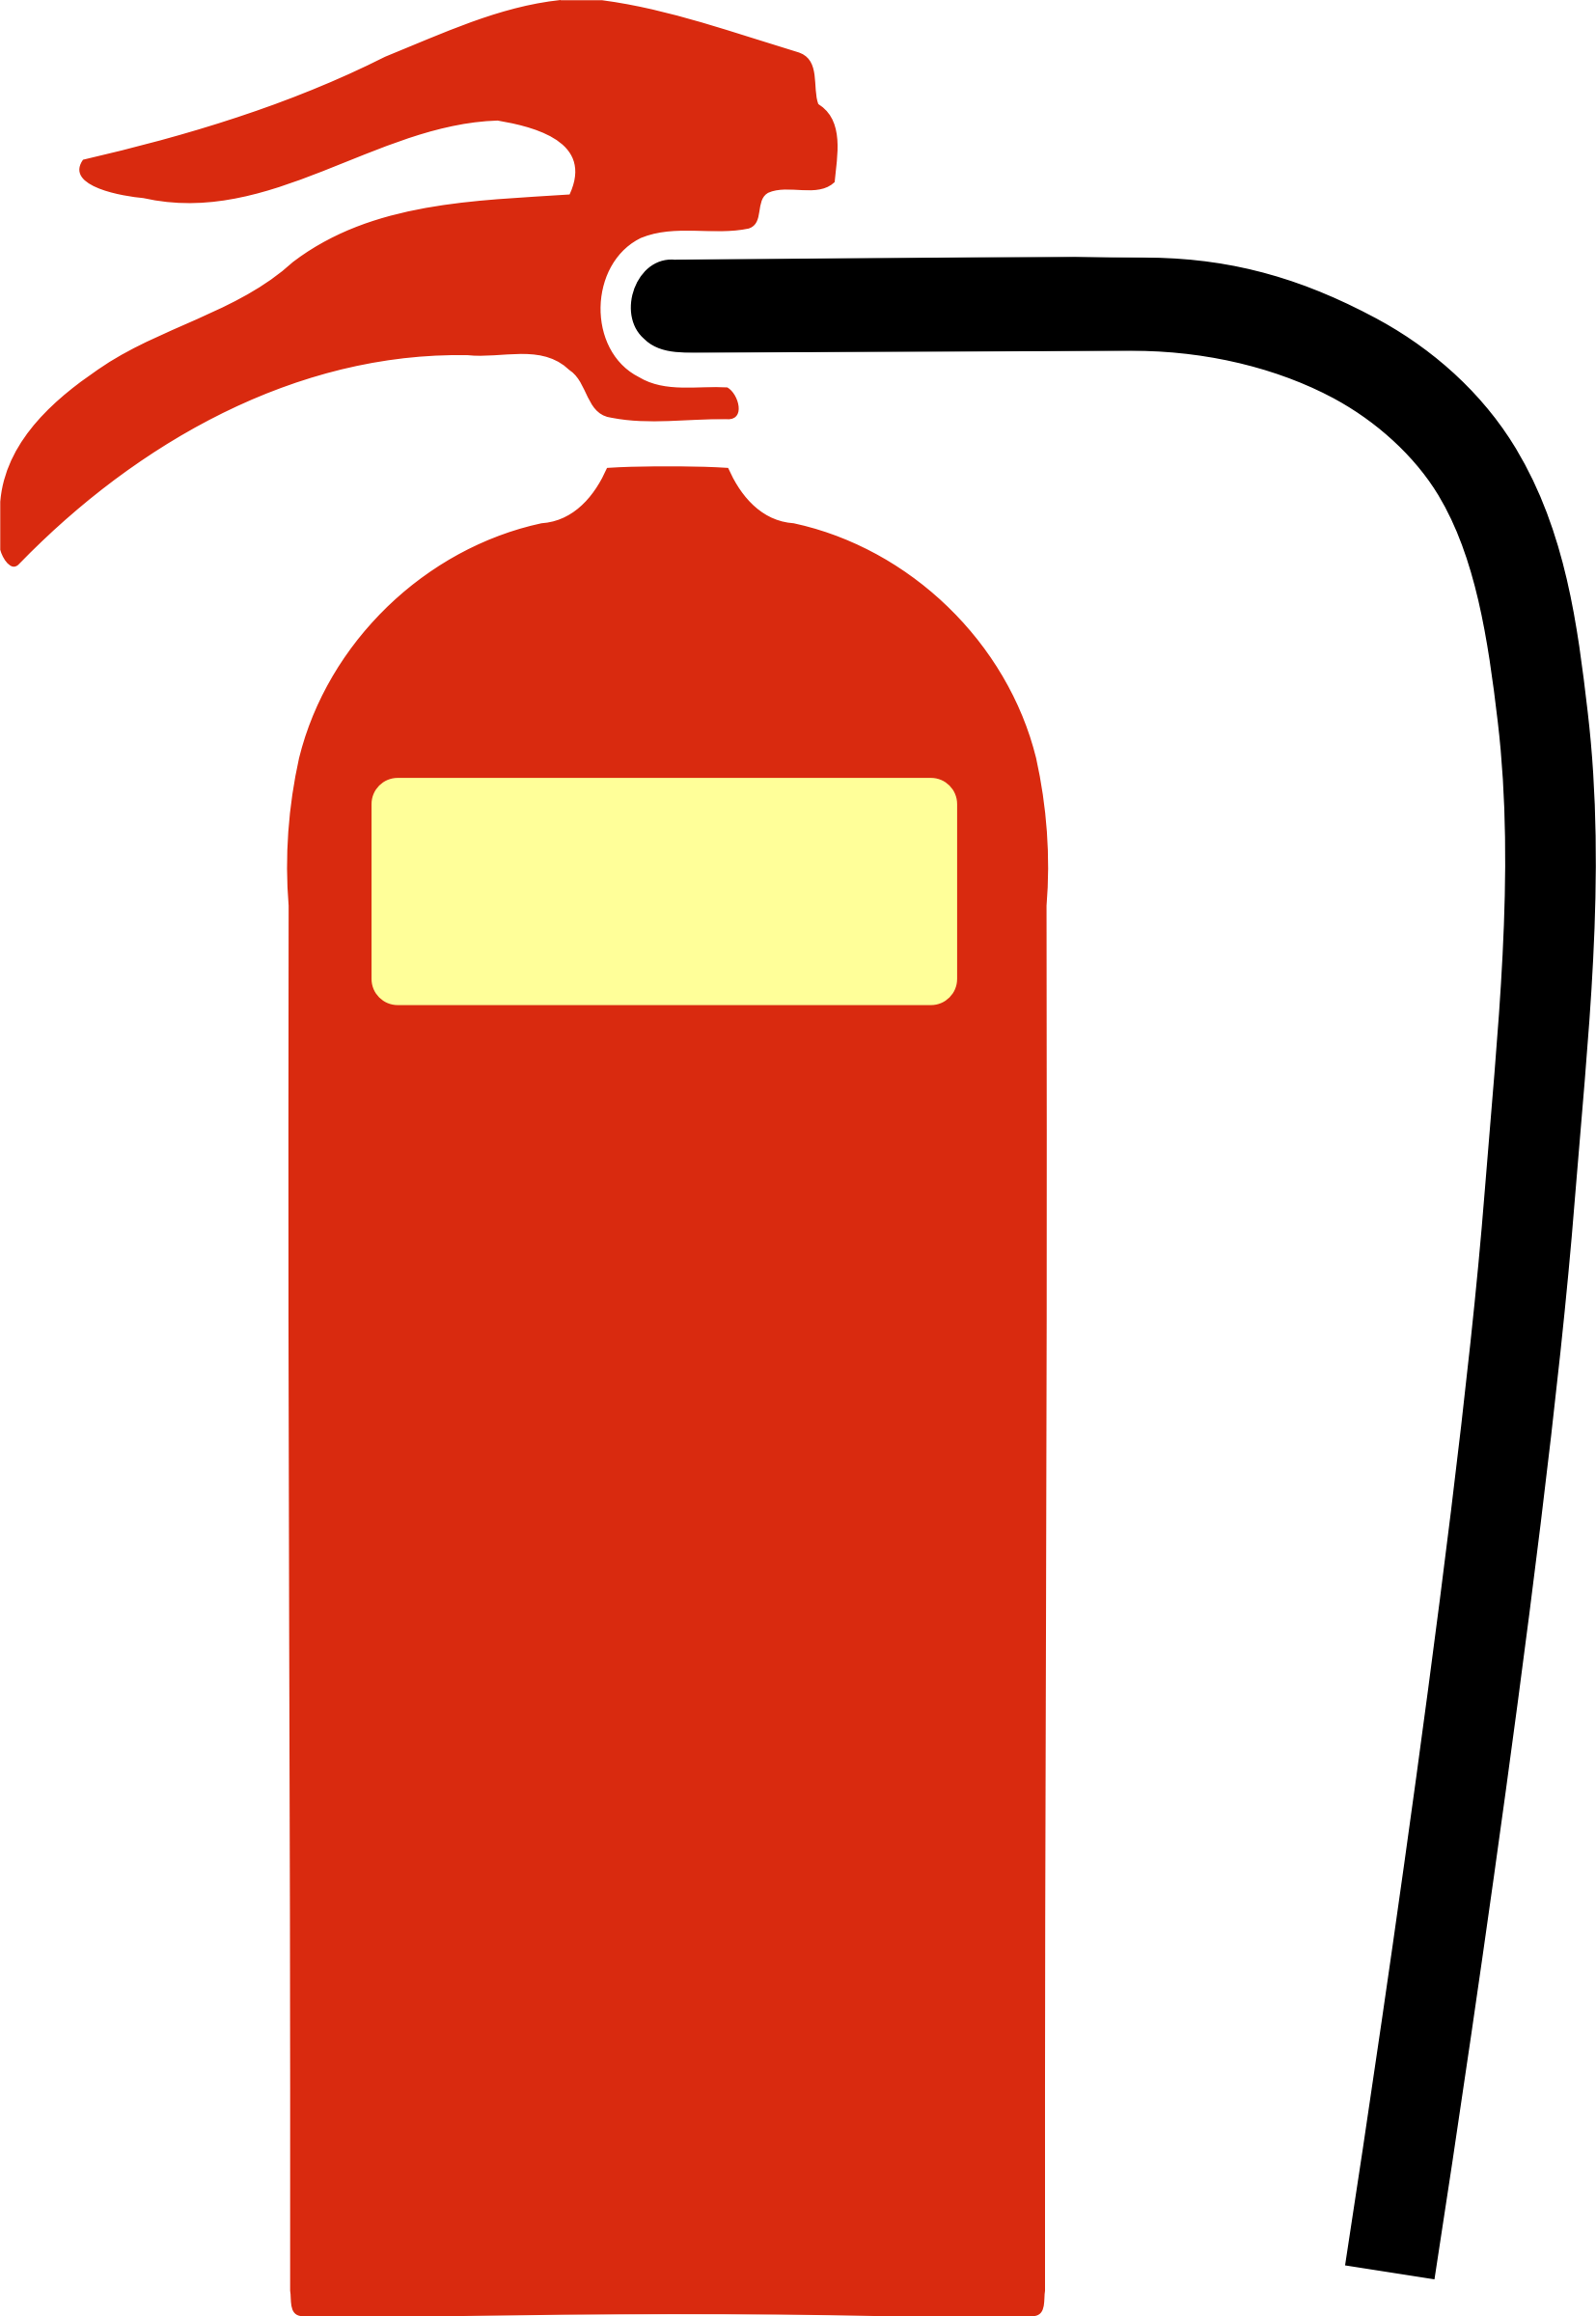 Fire extinguisher - foam by Firkin